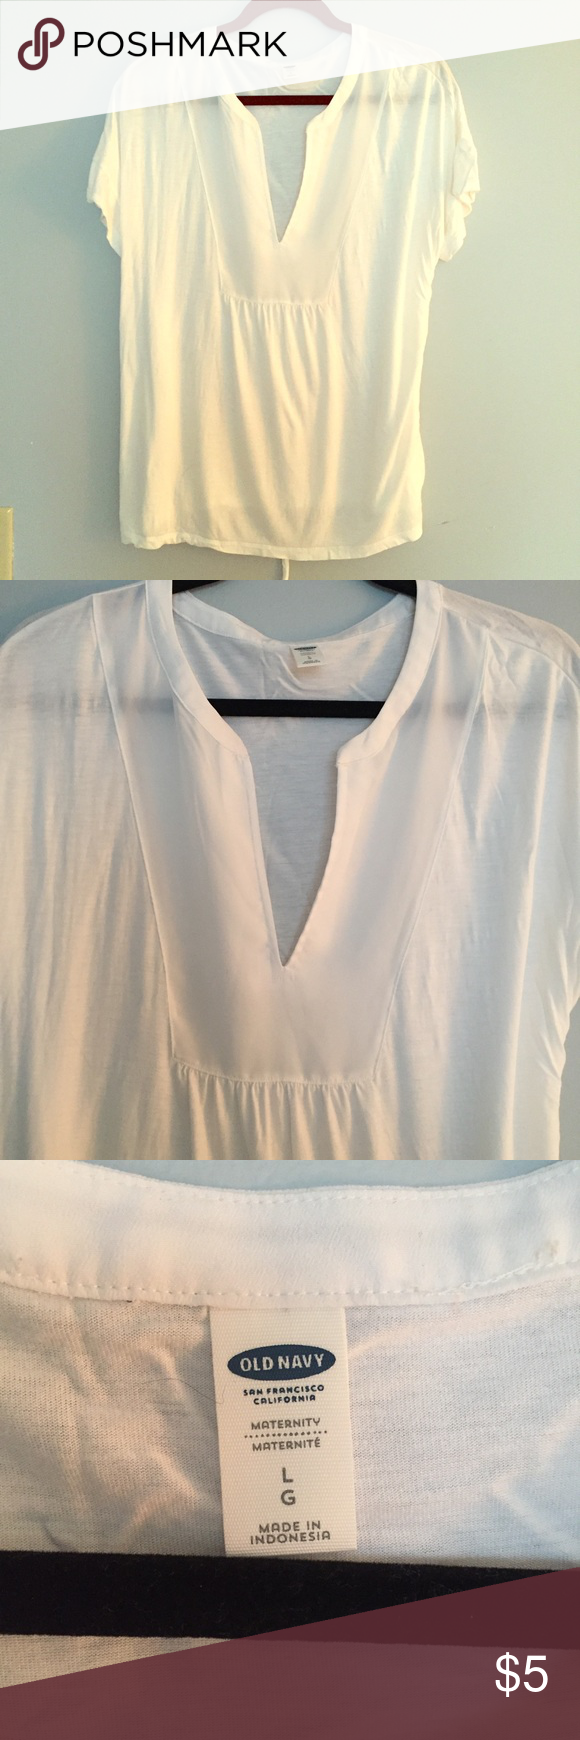 Old Navy Maternity Top Perfect for spring! Light and soft maternity top with a back tie. Old Navy Tops Tees - Short Sleeve